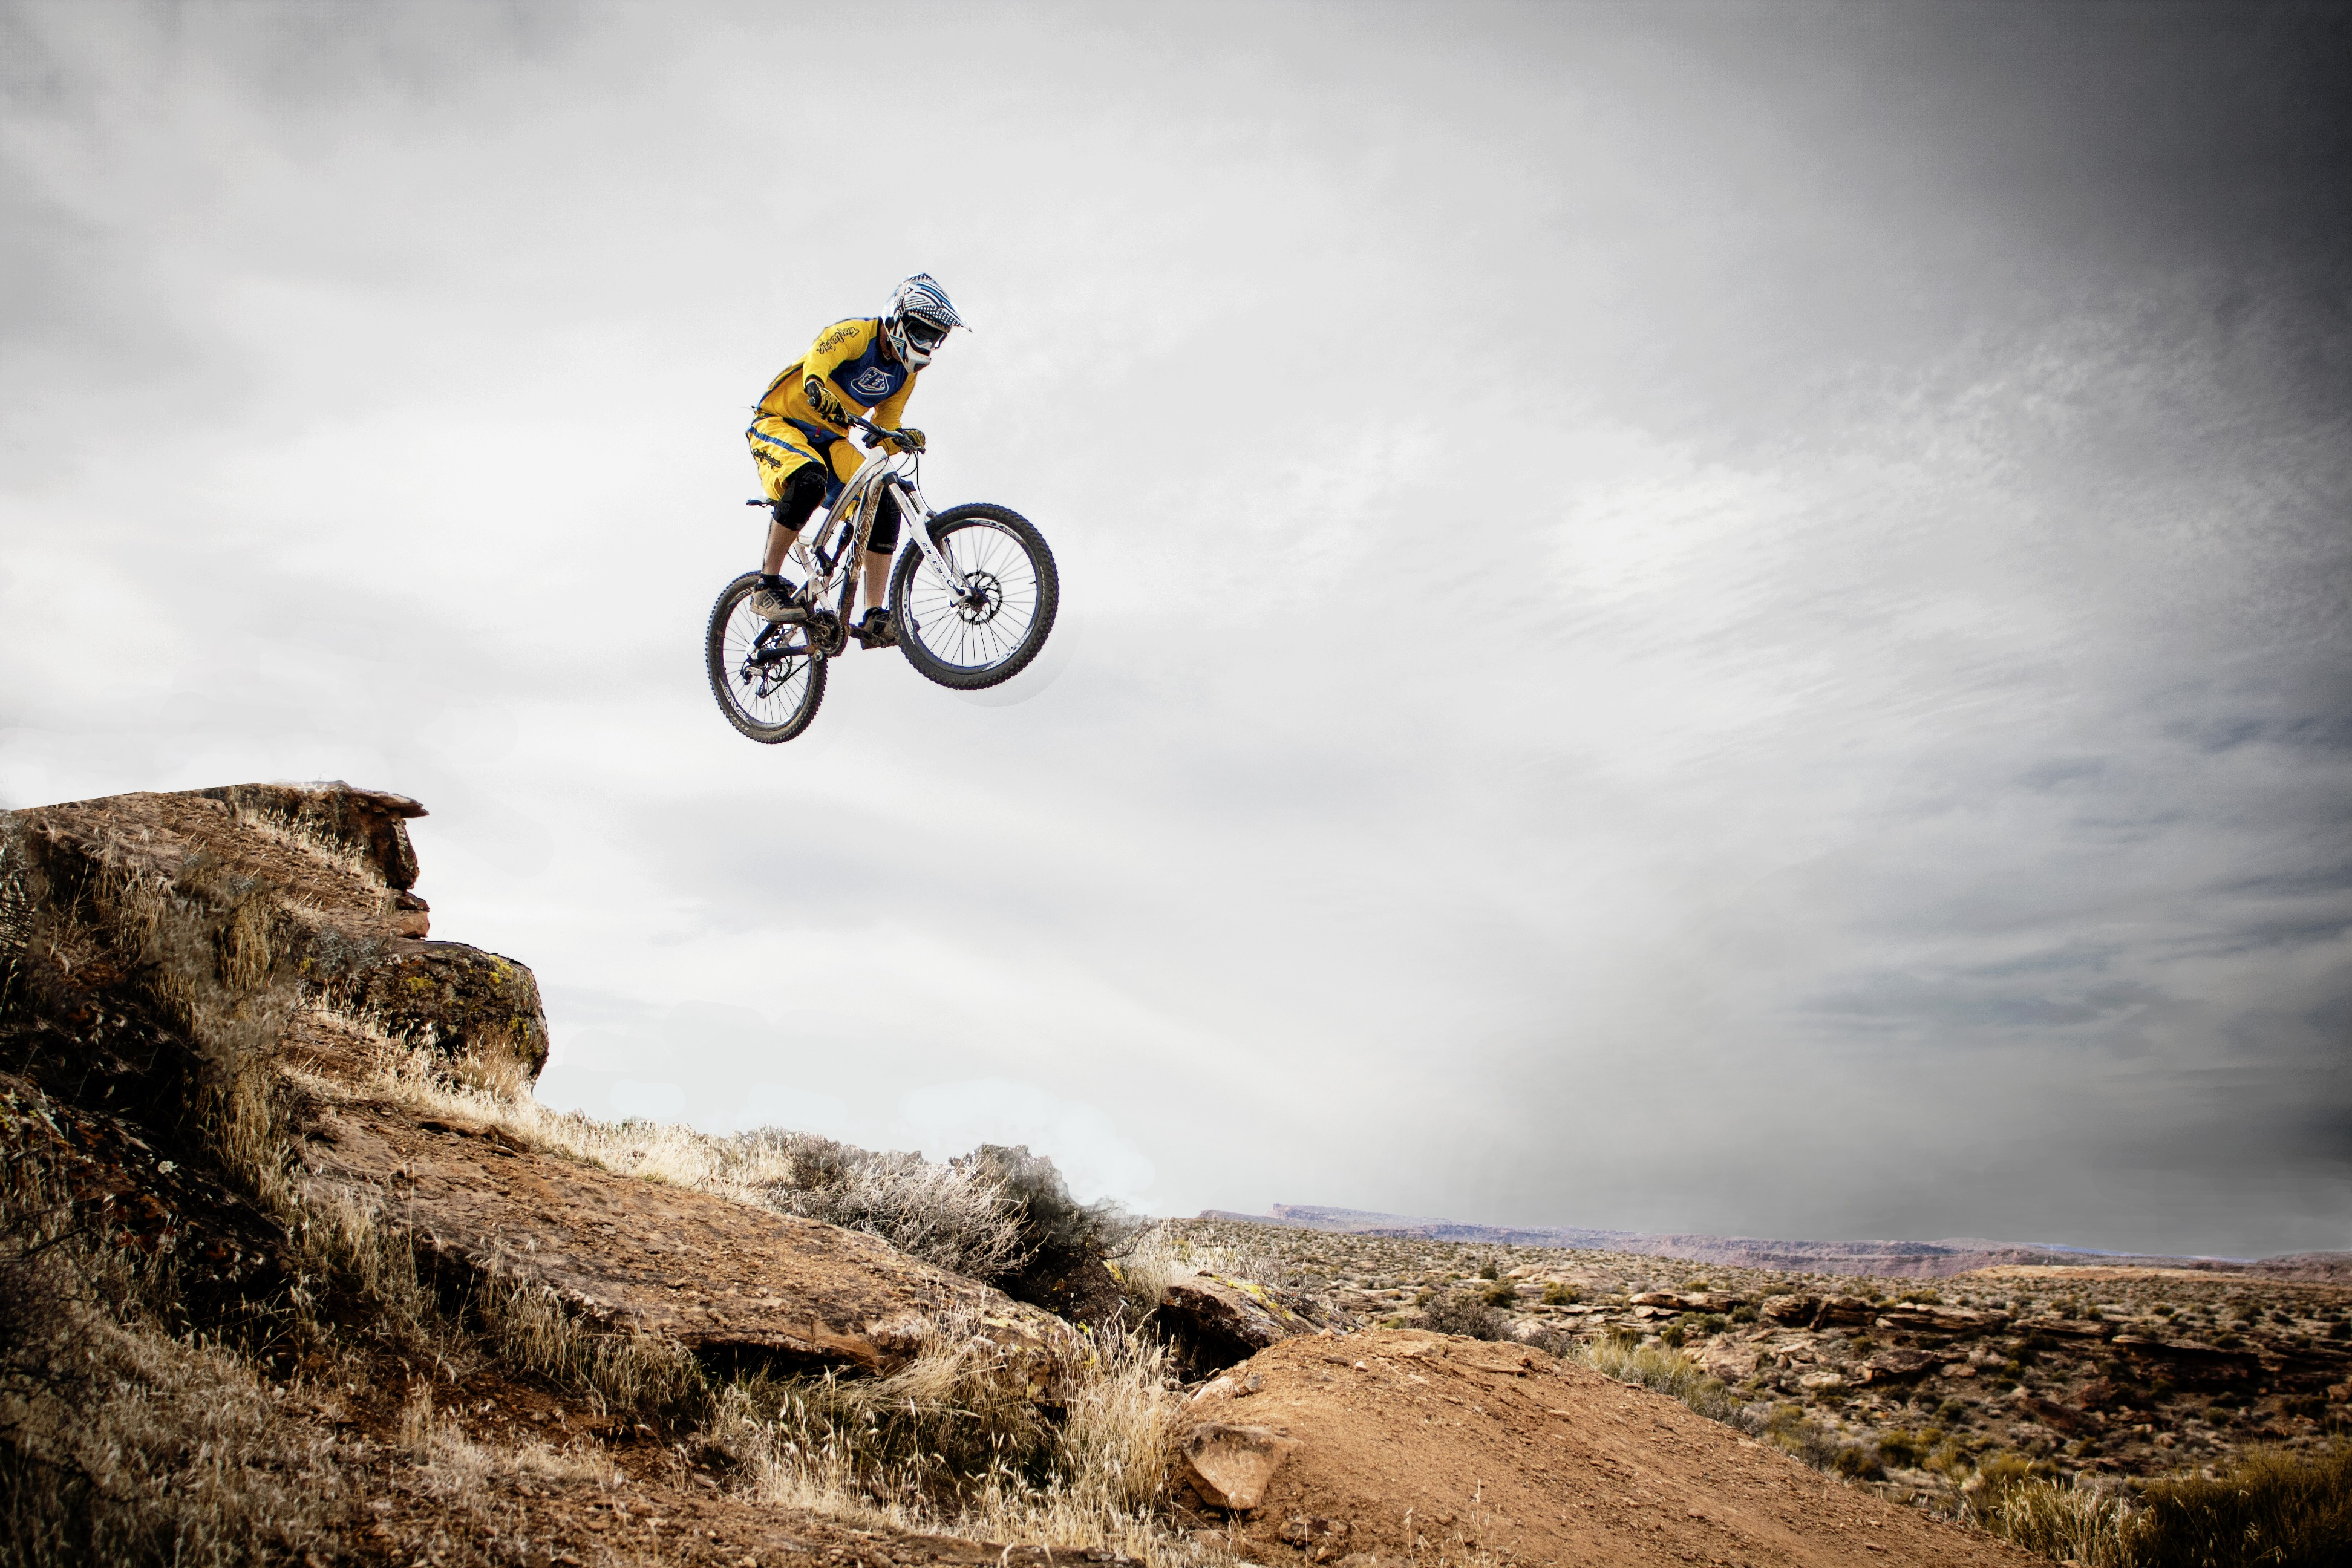 mountain biking in utah 4k ultra hd wallpaper and background image, Powerpoint templates